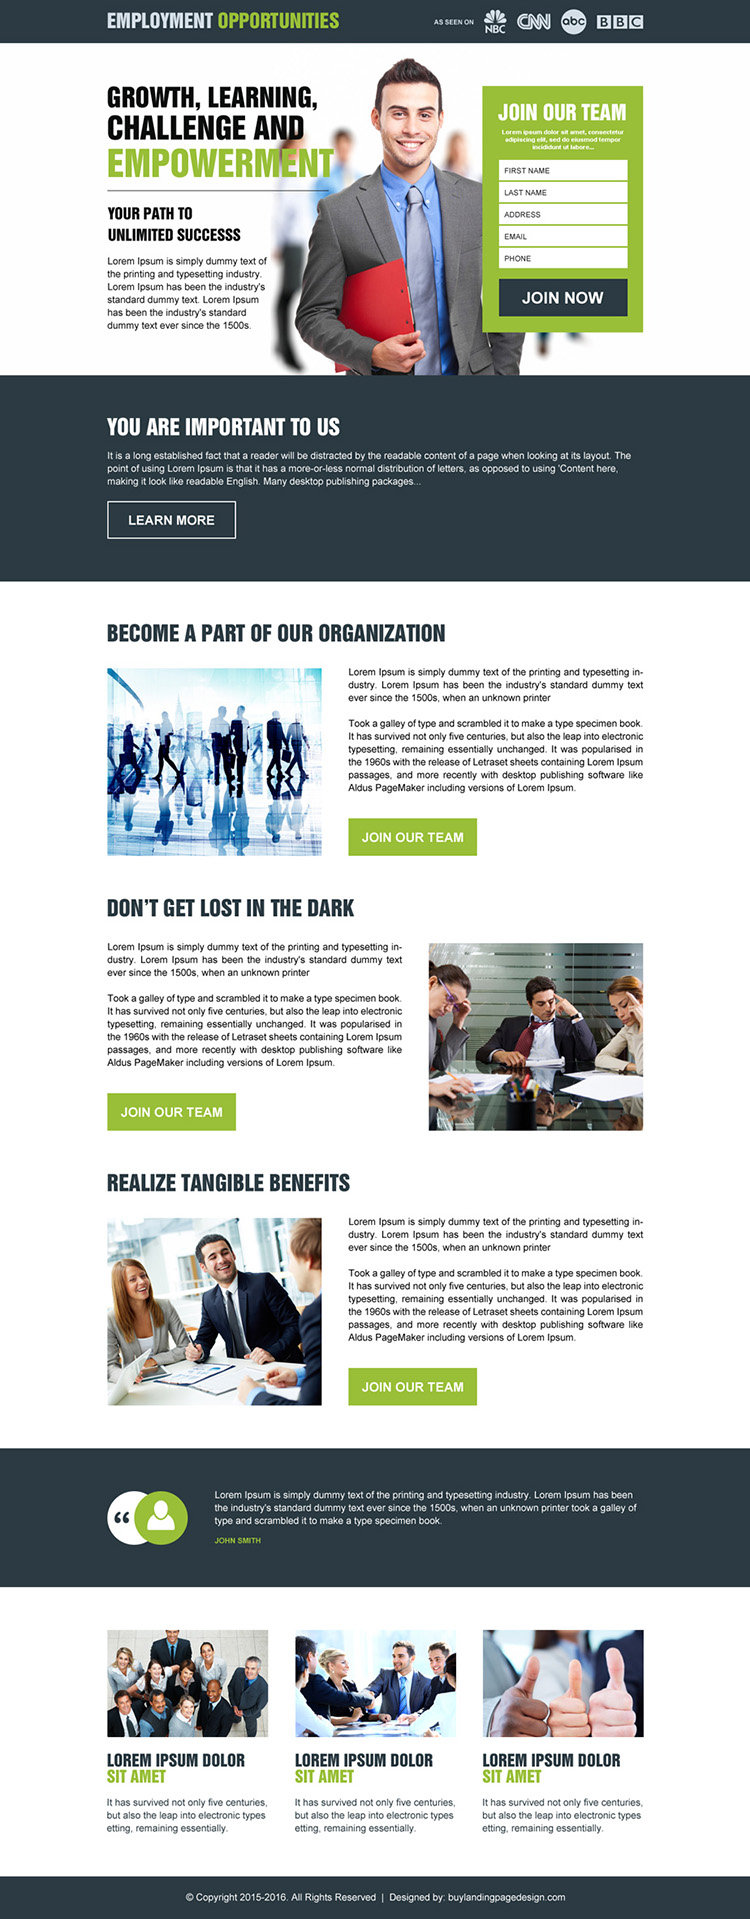 equal employment opportunities lead capture landing page design